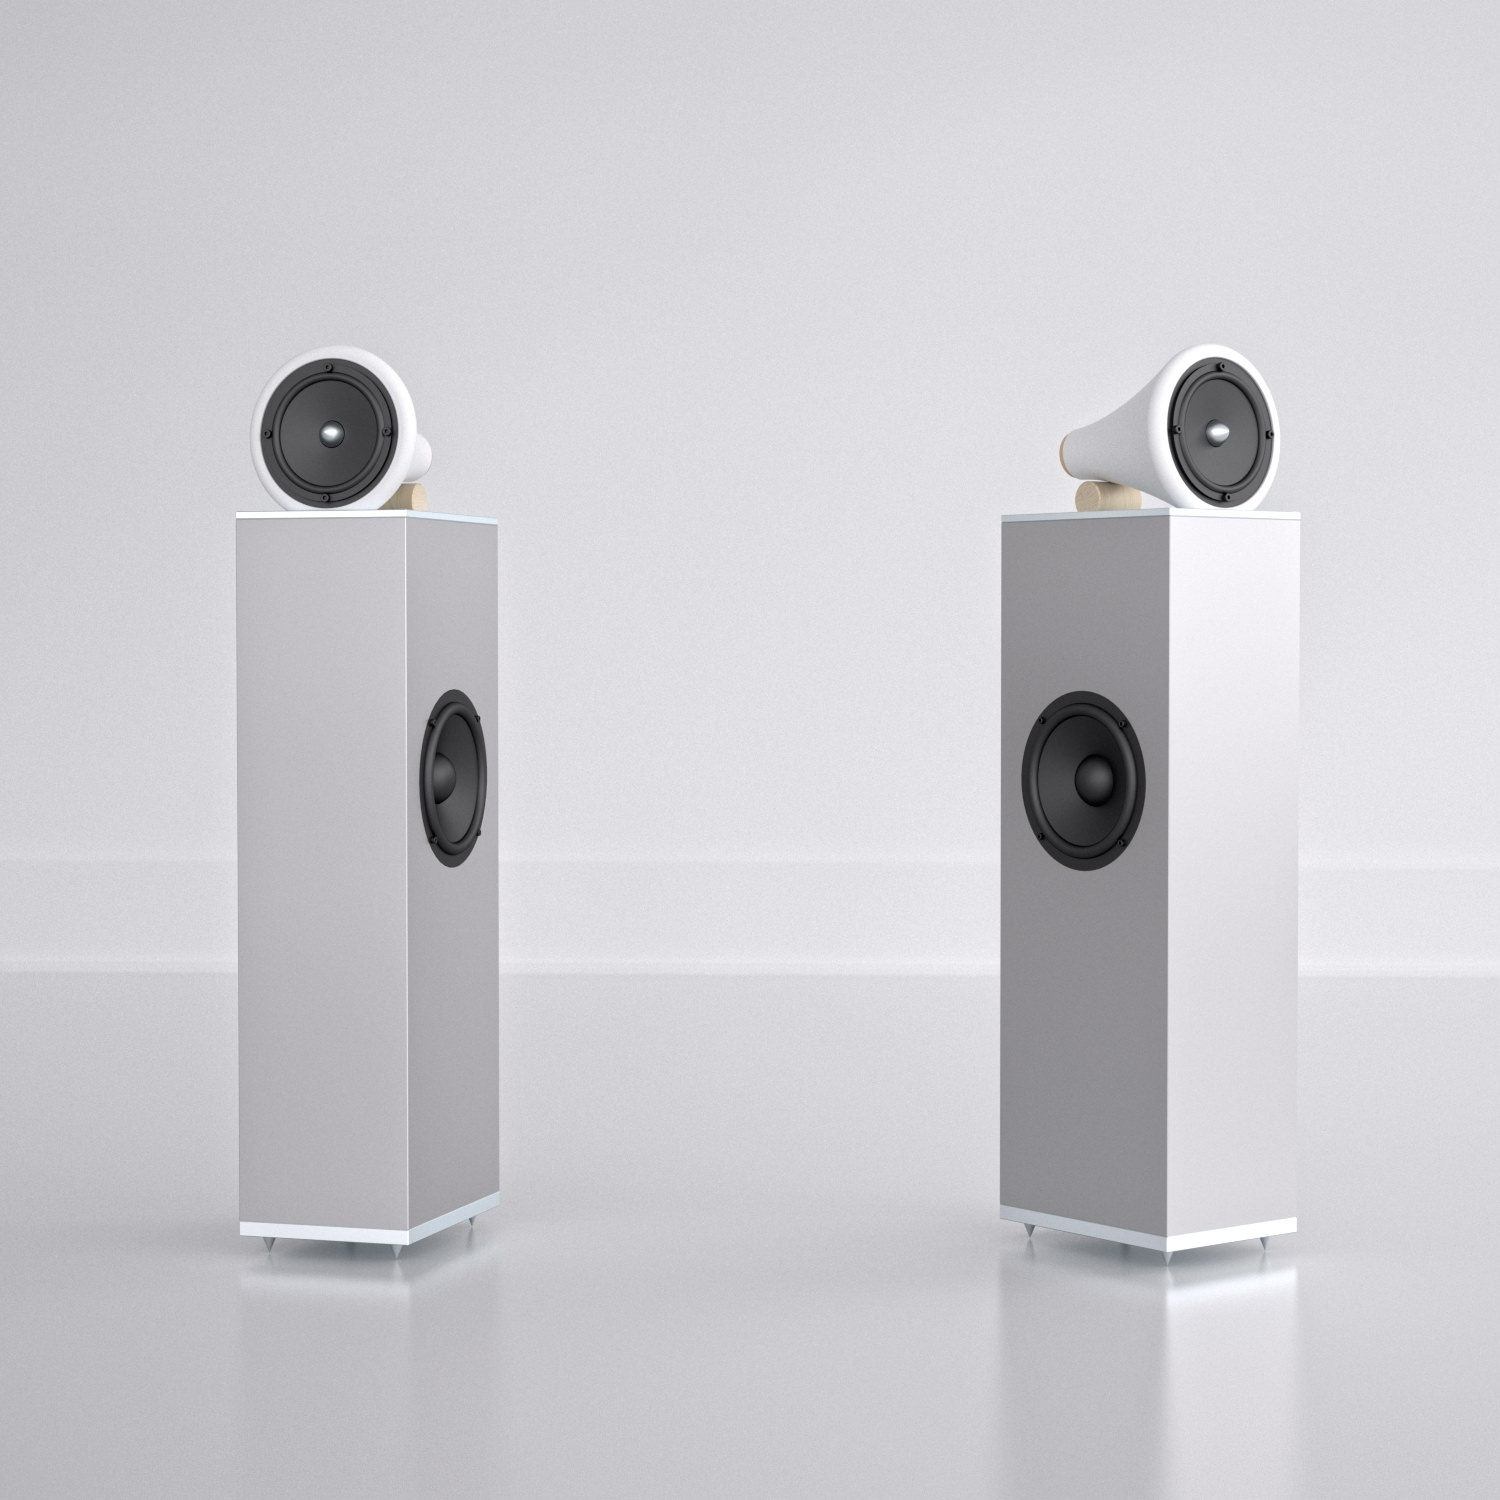 Joey Roth, Ceramic Speaker Towers